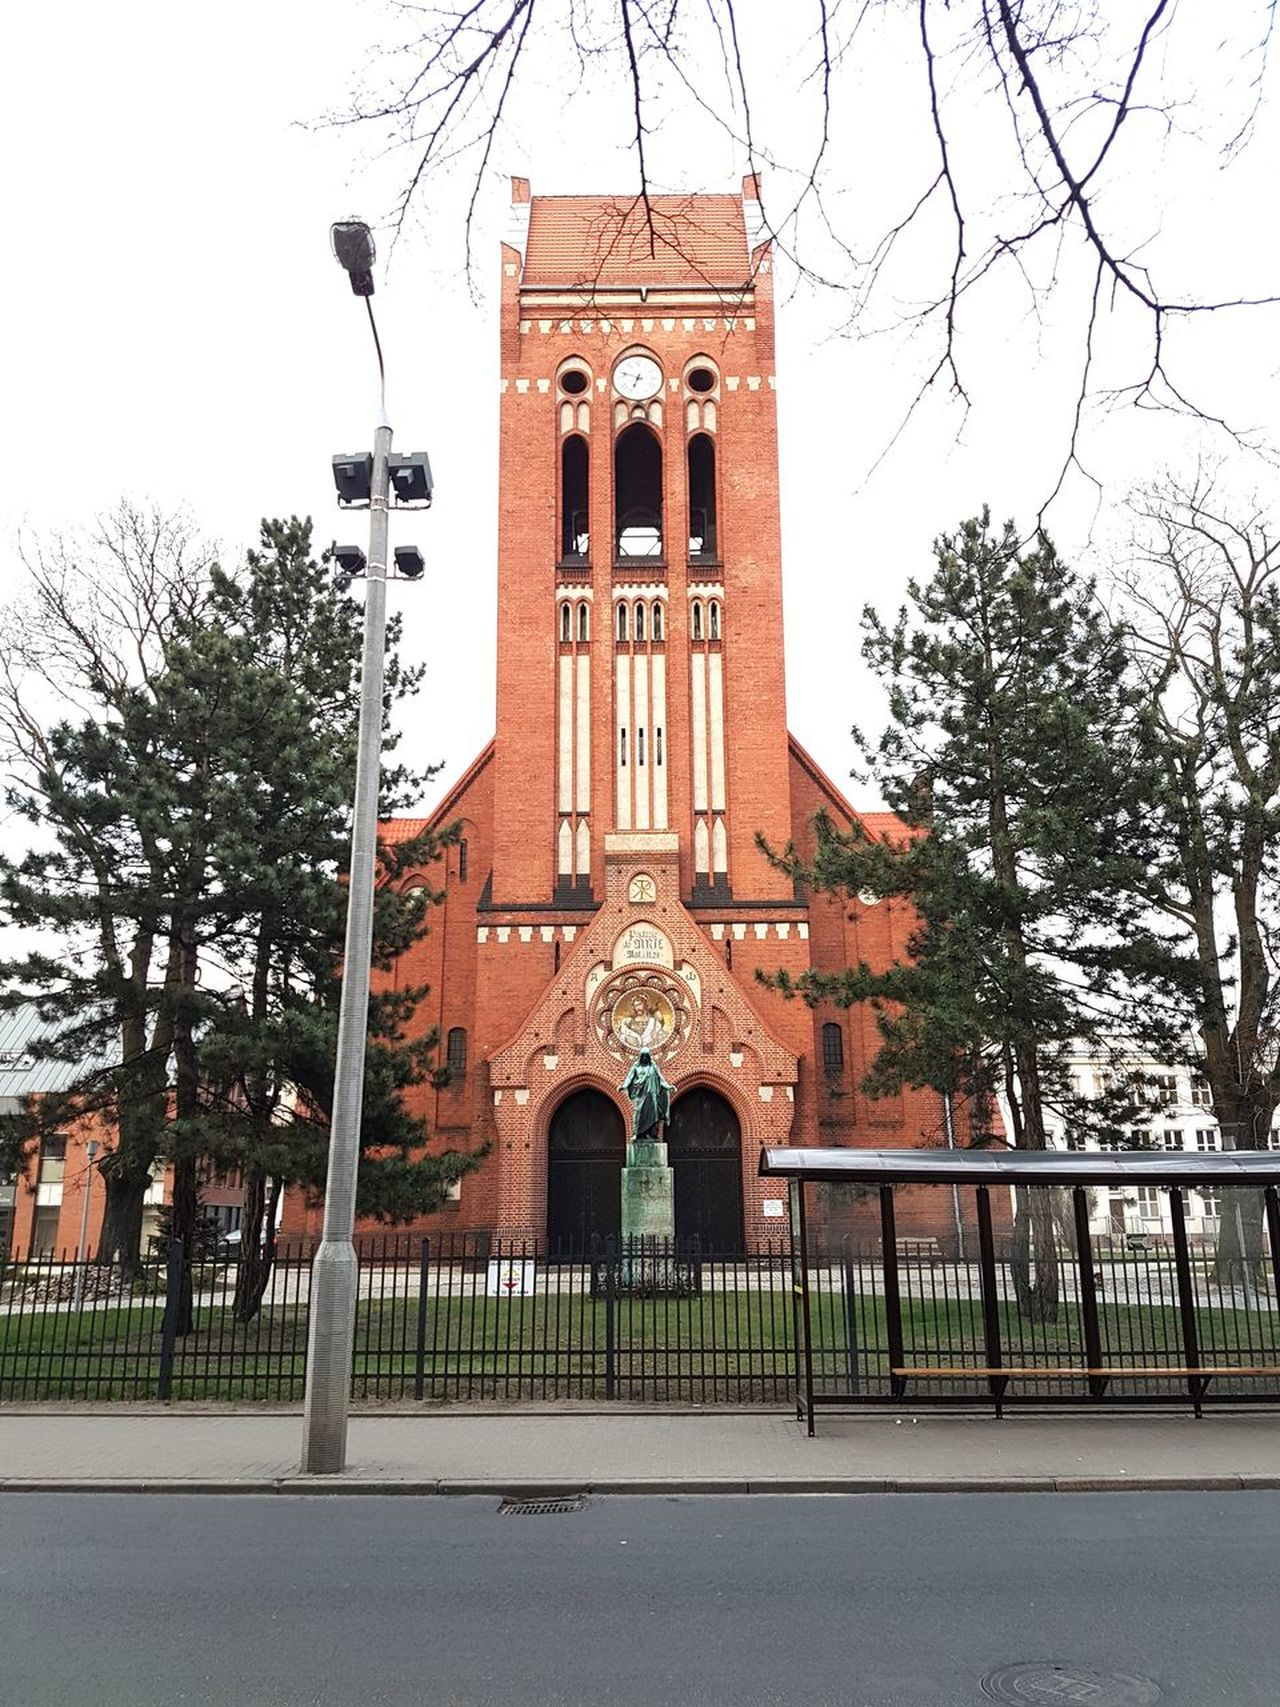 Bydgoszcz Poland Religion Built Structure Architecture Building Exterior No People Outdoors Day Sky Architecture Polandarchitecture Street Church Clock Clock Tower